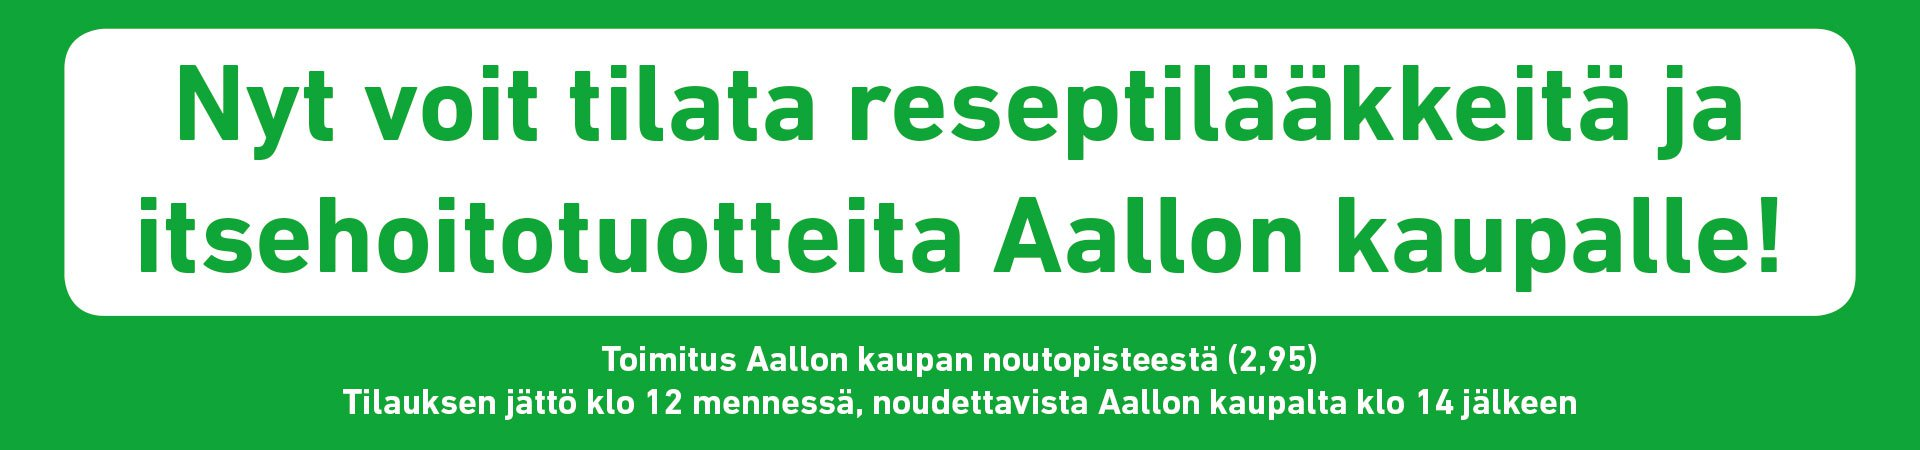 Toimitus Aallon kauppaan